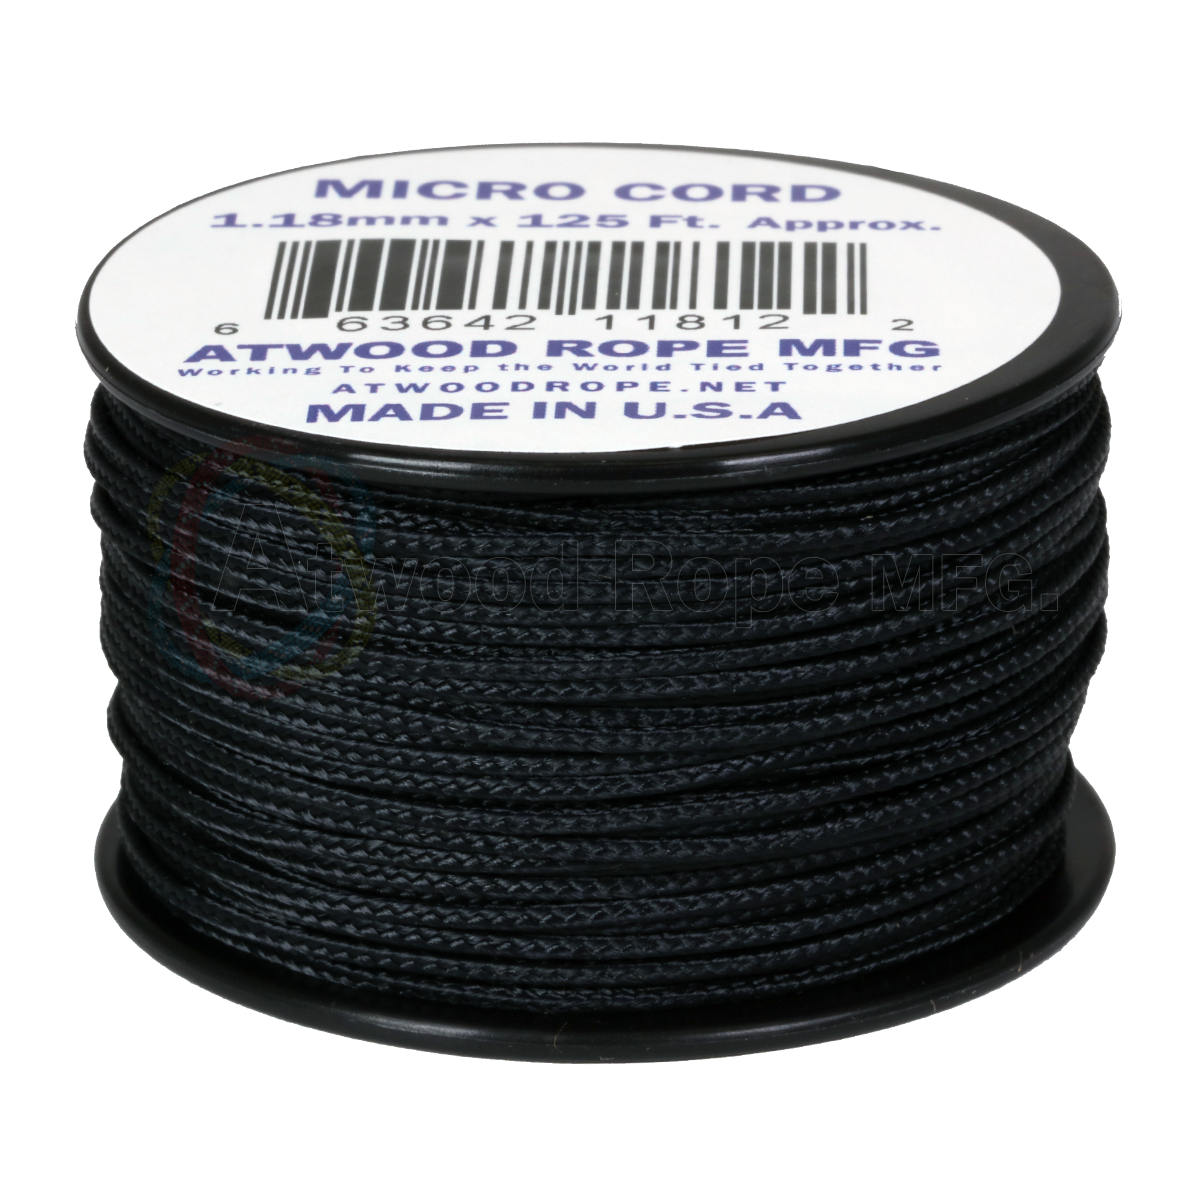 Micro Cord 1.18mm 125ft Nylon Rope Spool Made in the USA Glow in the Dark